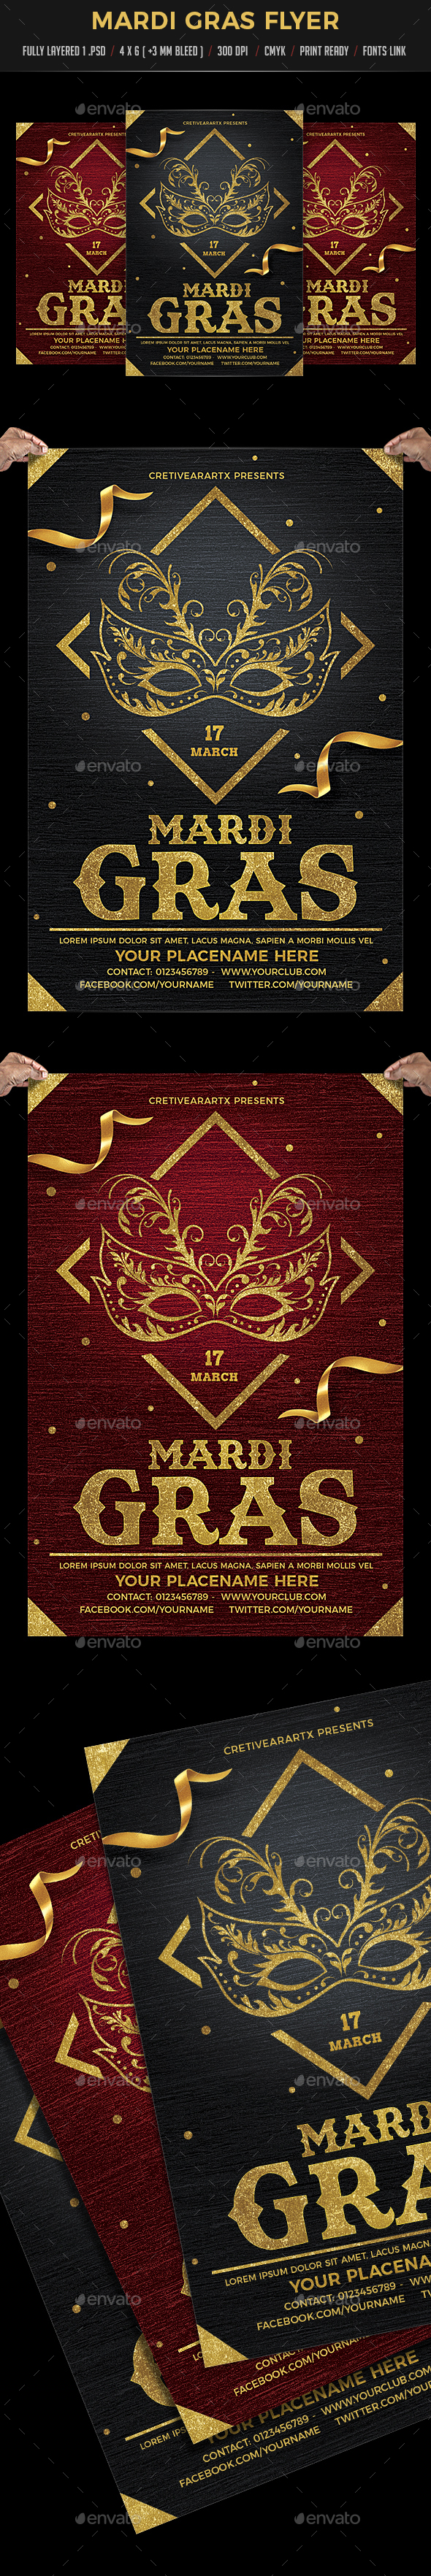 Madri Gras Flyer - Events Flyers